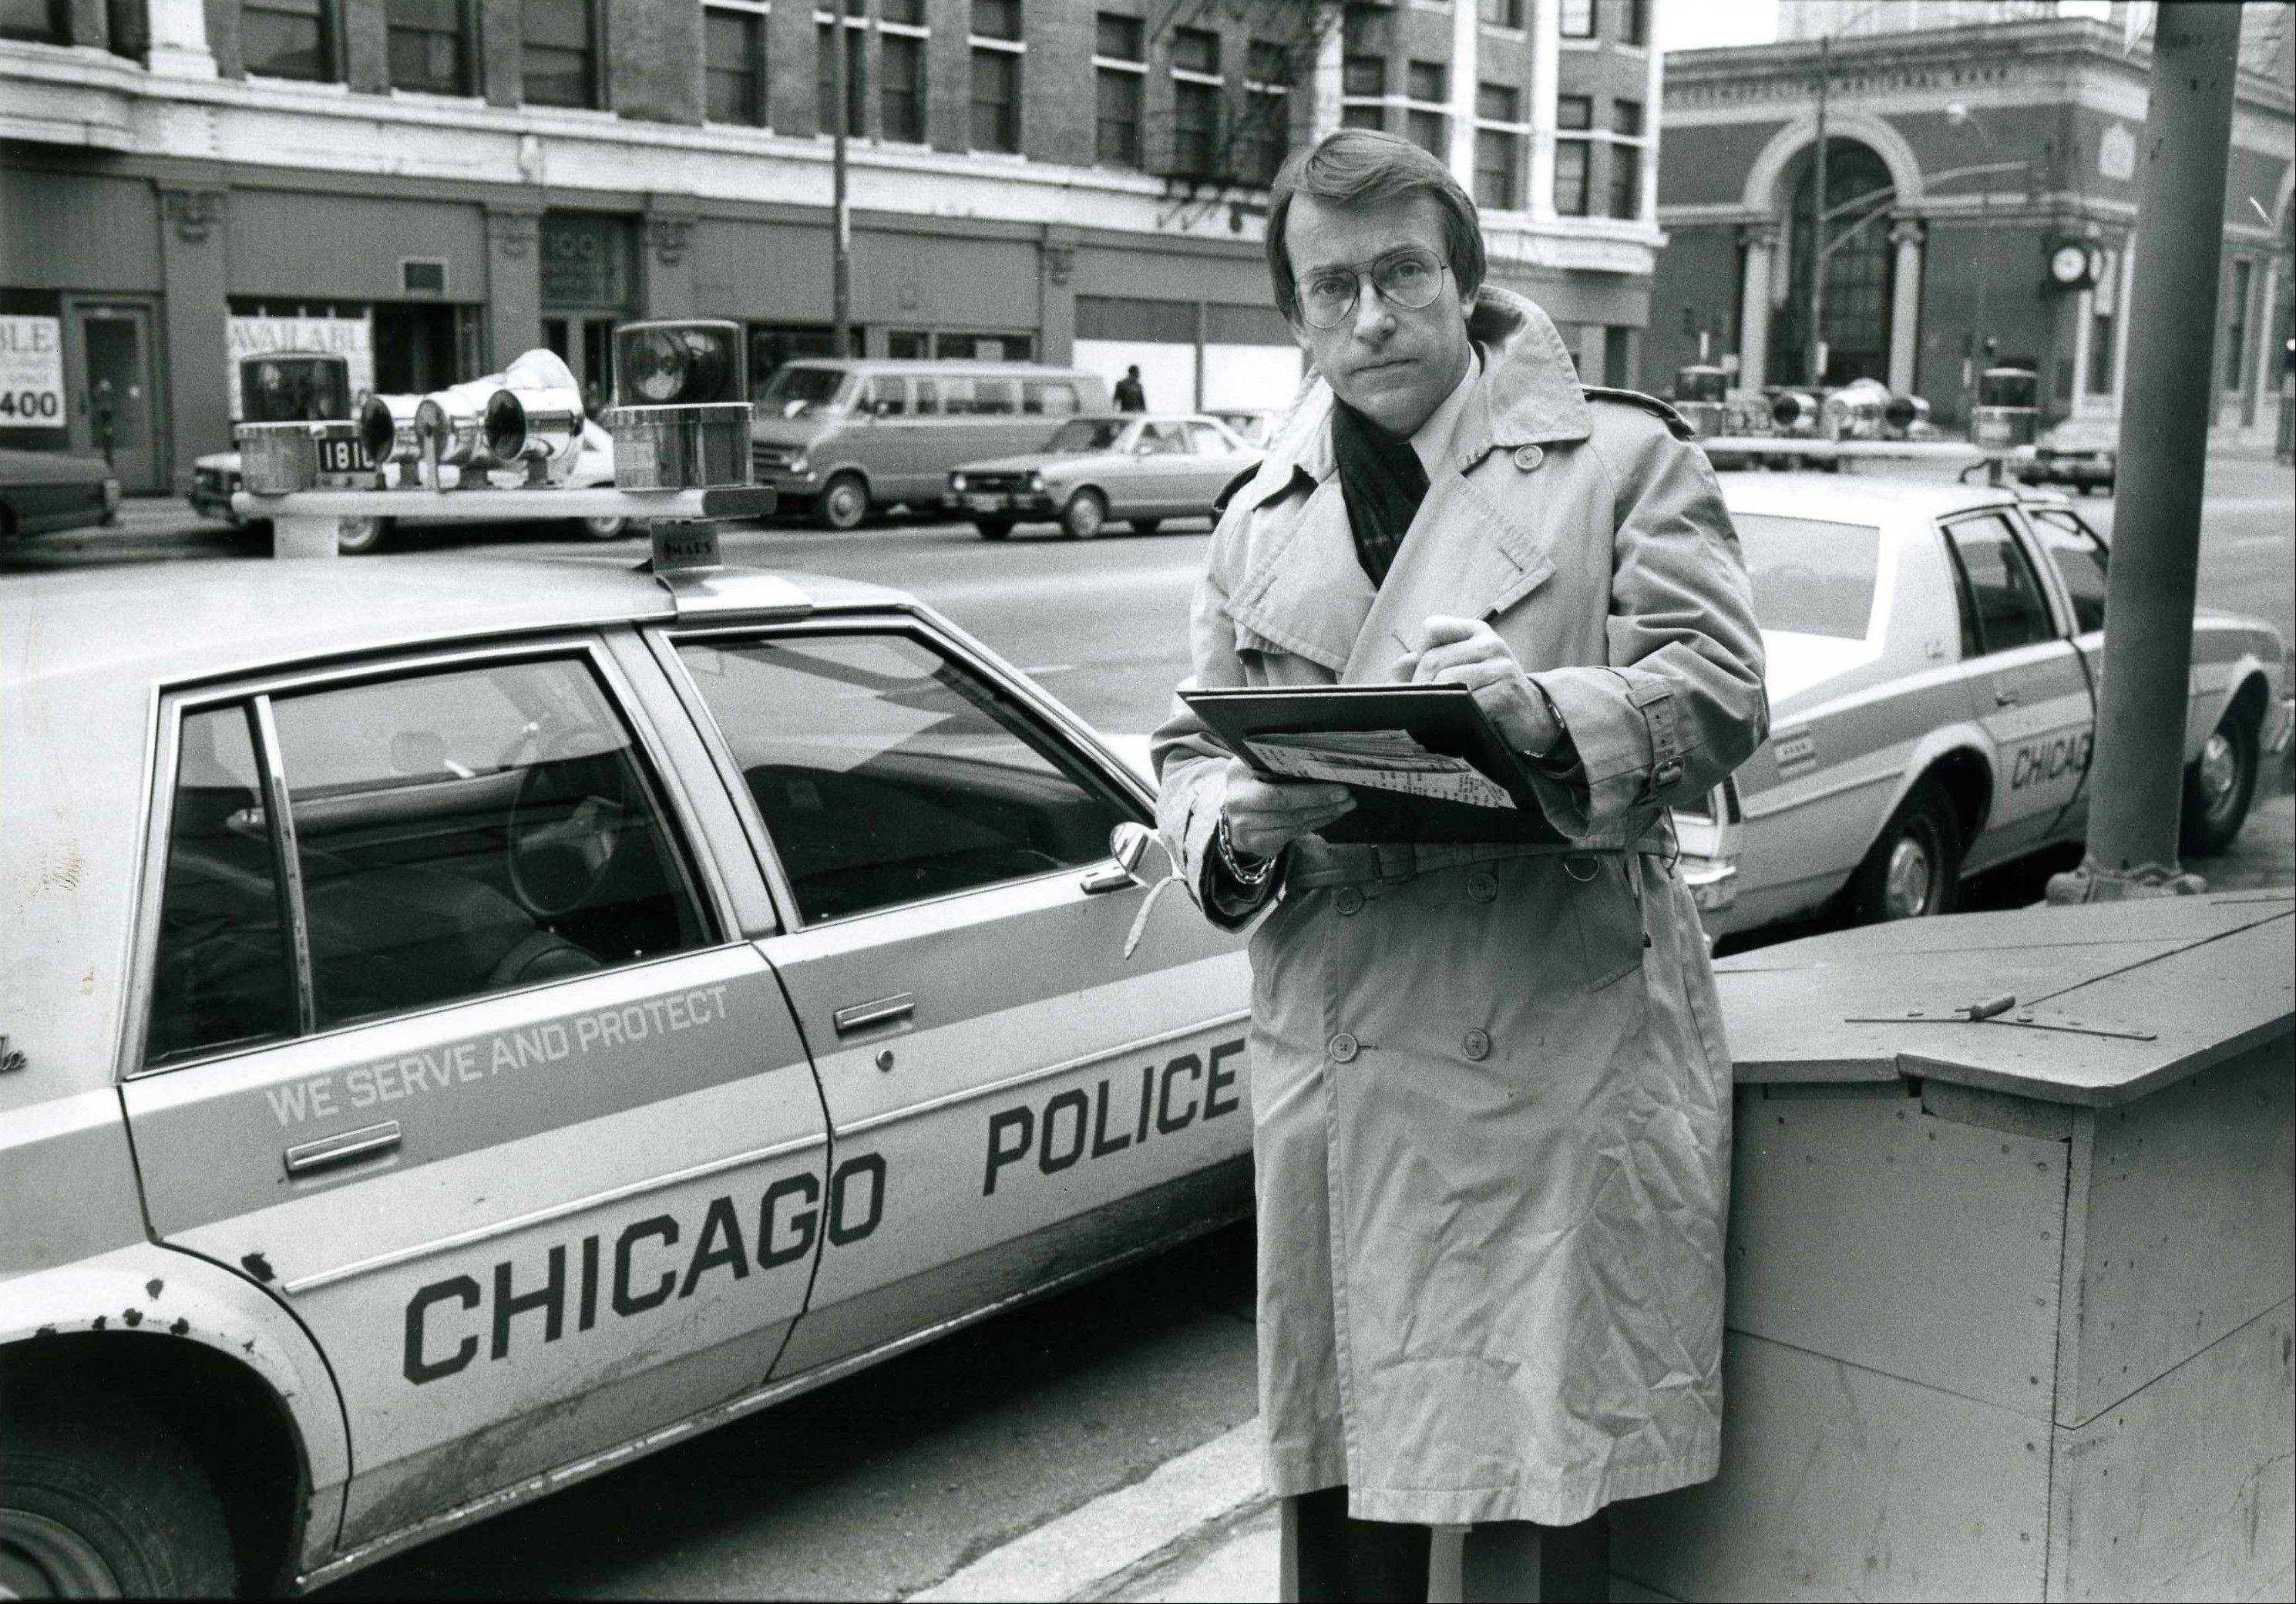 In this Feb. 2, 1983 image released by ABC, ABC News correspondent Richard Threlkeld is shown in Chicago. Threlkeld, who worked for ABC News from 1982-89 and spent the majority of his career at CBS News, died Friday, Jan. 13, 2012, in Amagansett, N.Y., and was pronounced dead at Southampton Hospital. He lived nearby in East Hampton.�